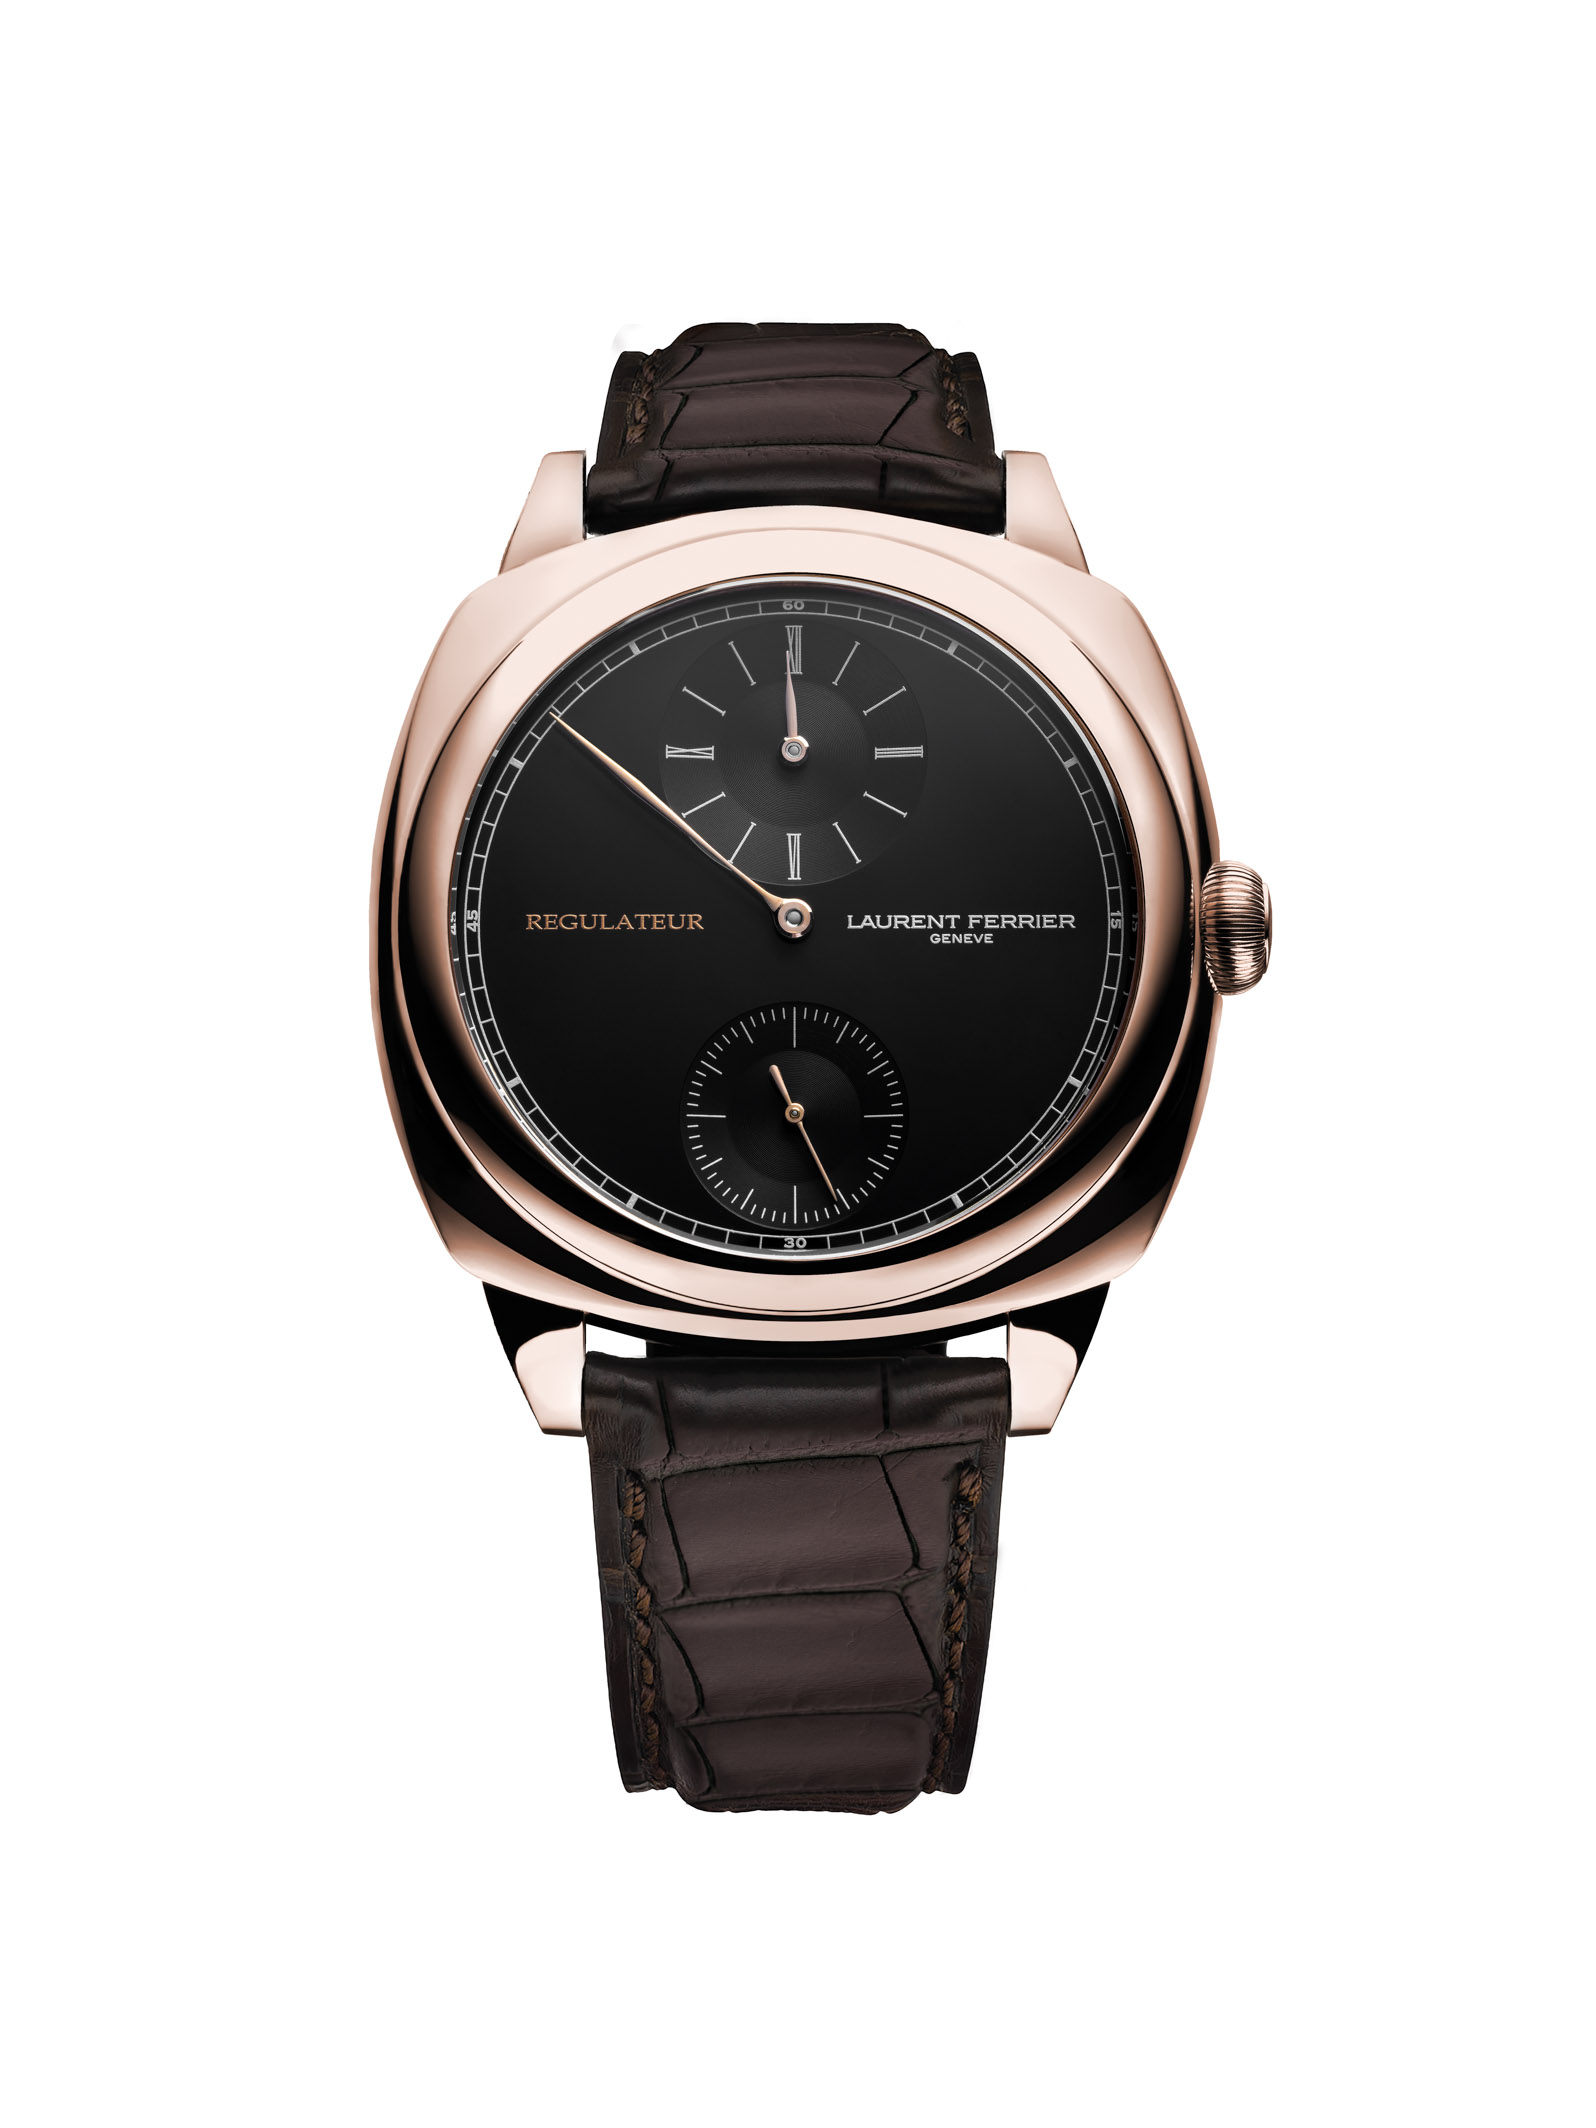 De elegante en zeer precieze Laurent Ferrier Galet Square Régulateur Black